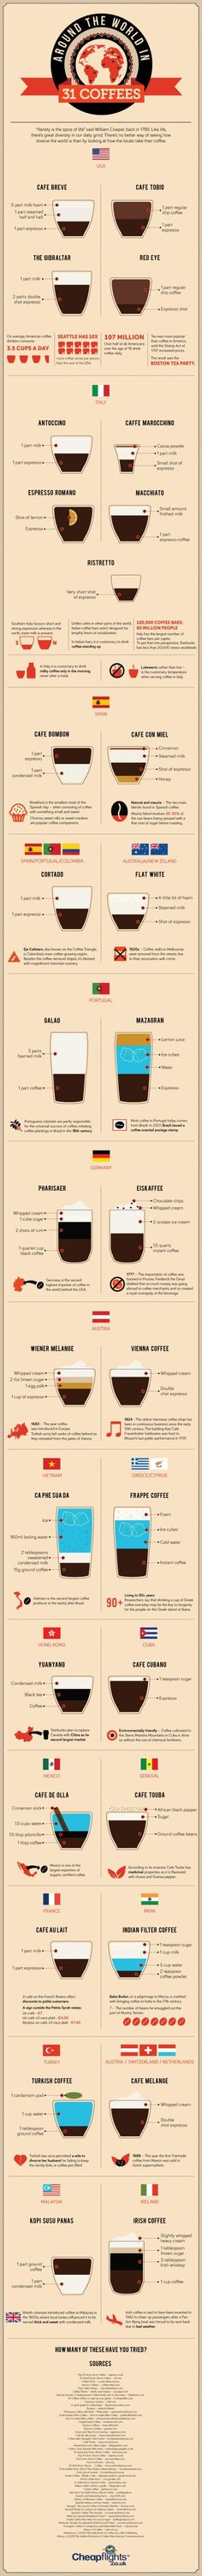 Most of us need that coffee kick in the morning to get us through the day. 2 sugars, soy milk, decaf – however you drink this liquid black gold, we all NEED it. Check out this clever infographic showing us how people around the world drink their coffees!